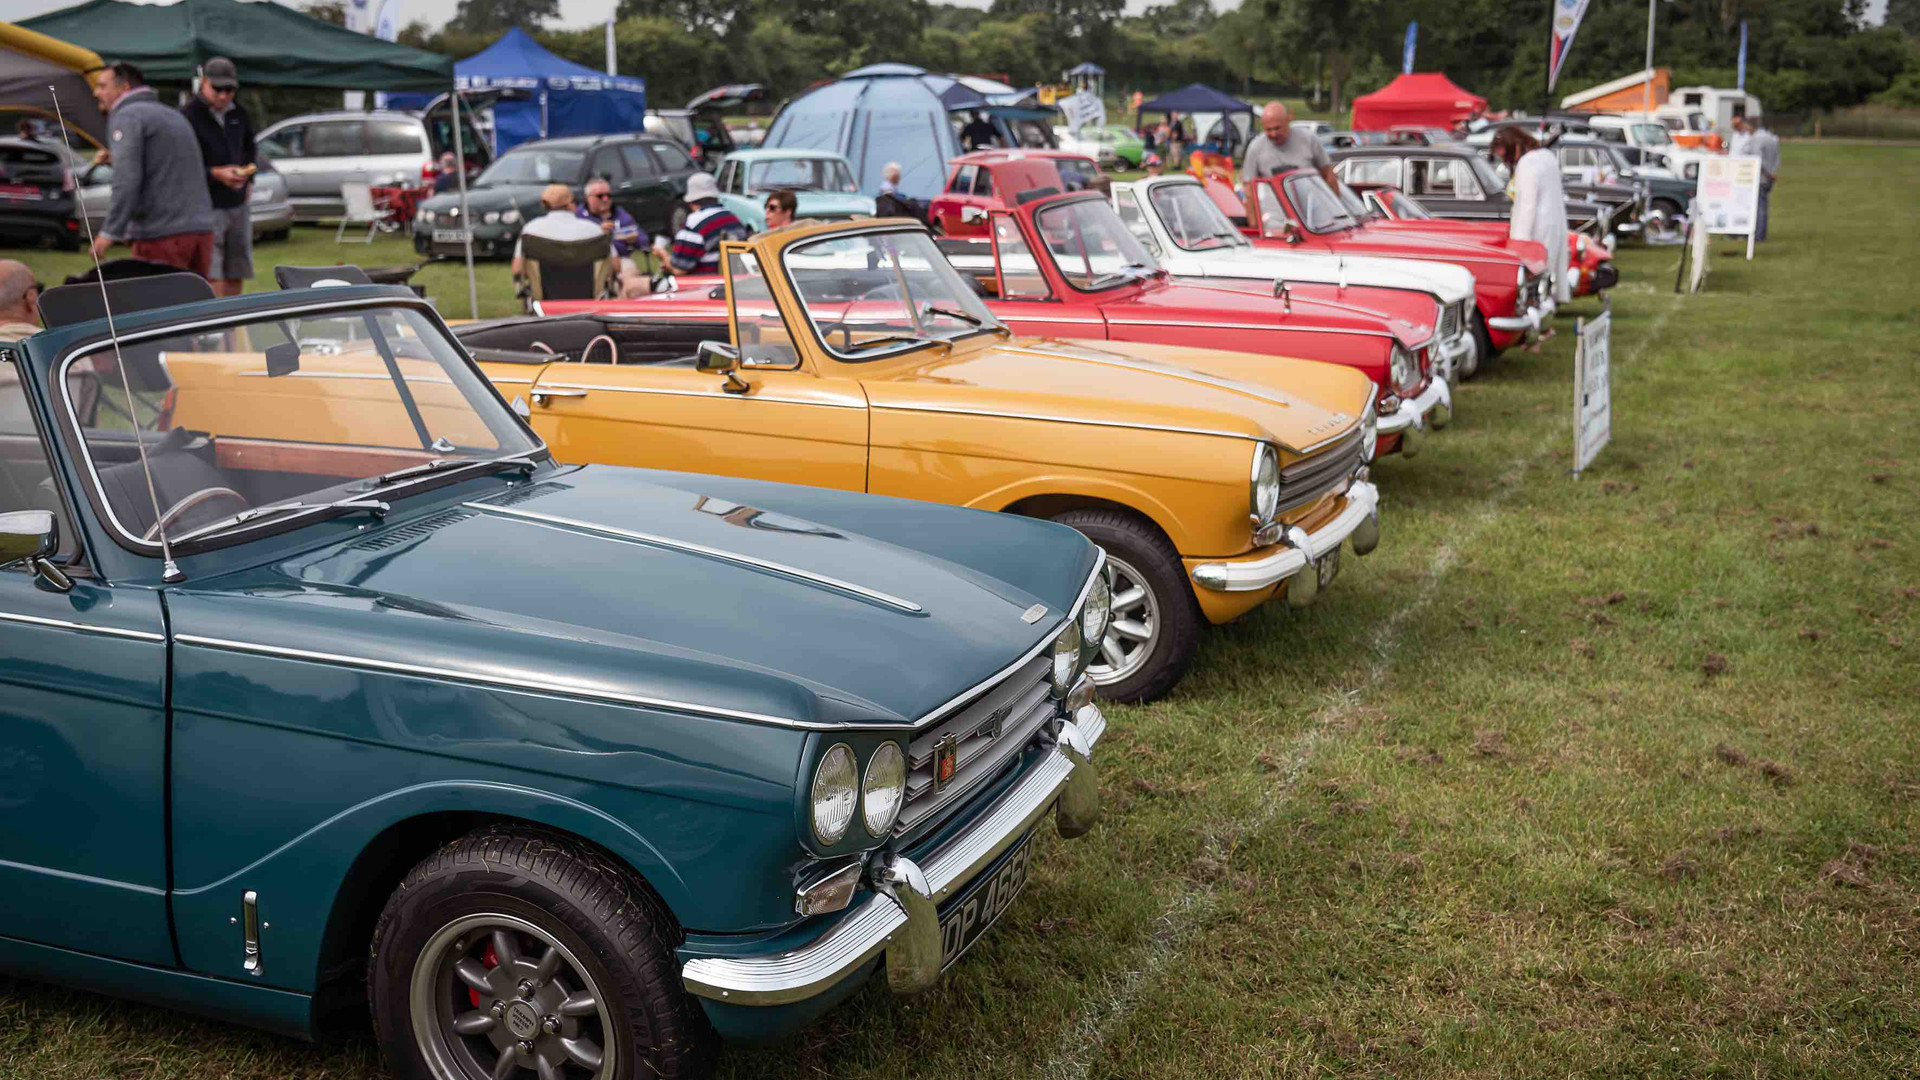 bromley-pageant-classic-car-show-event-m